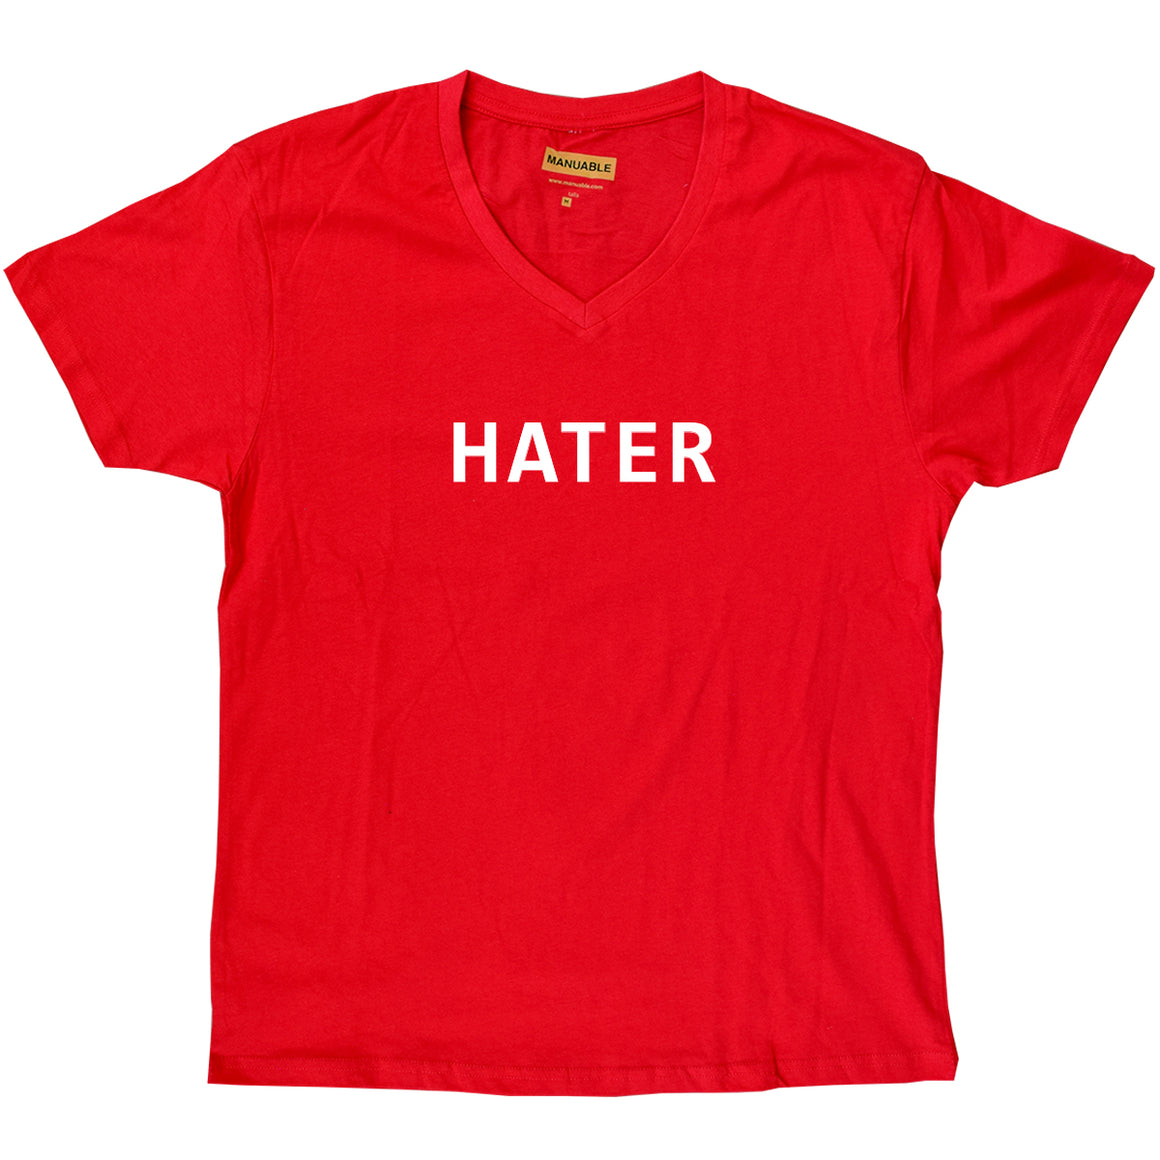 Hater - Guy